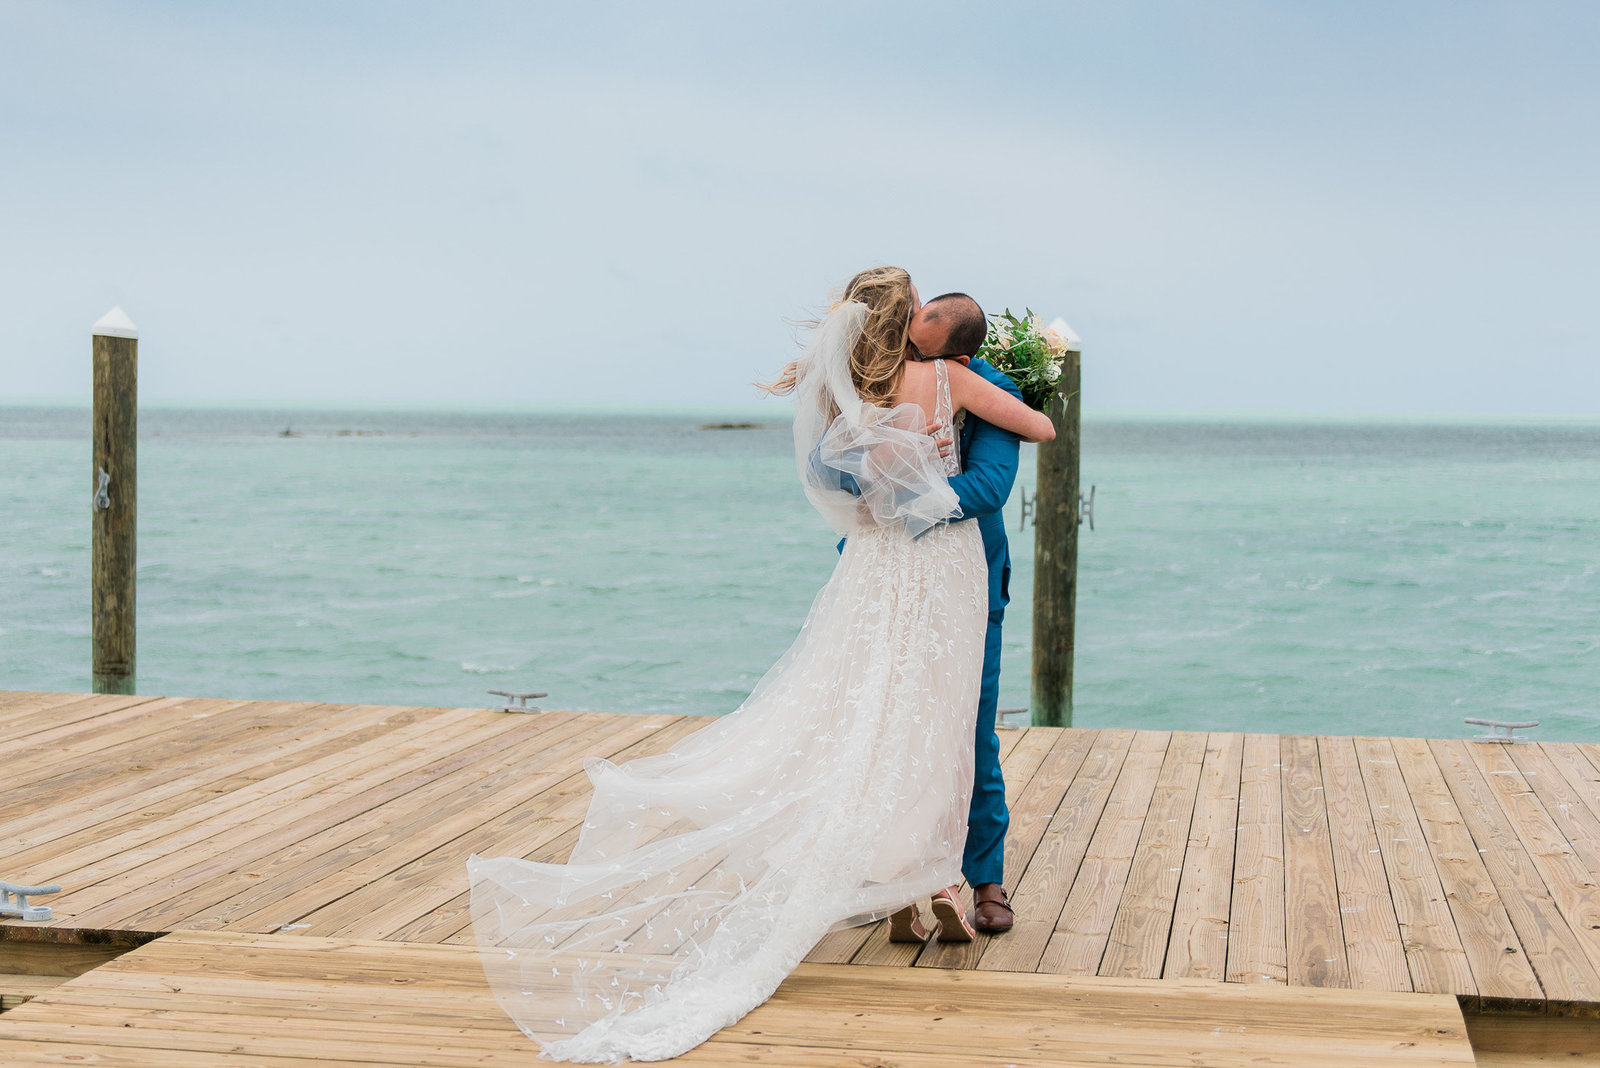 Amara Cay destination wedding photos in Islamorada, Florida